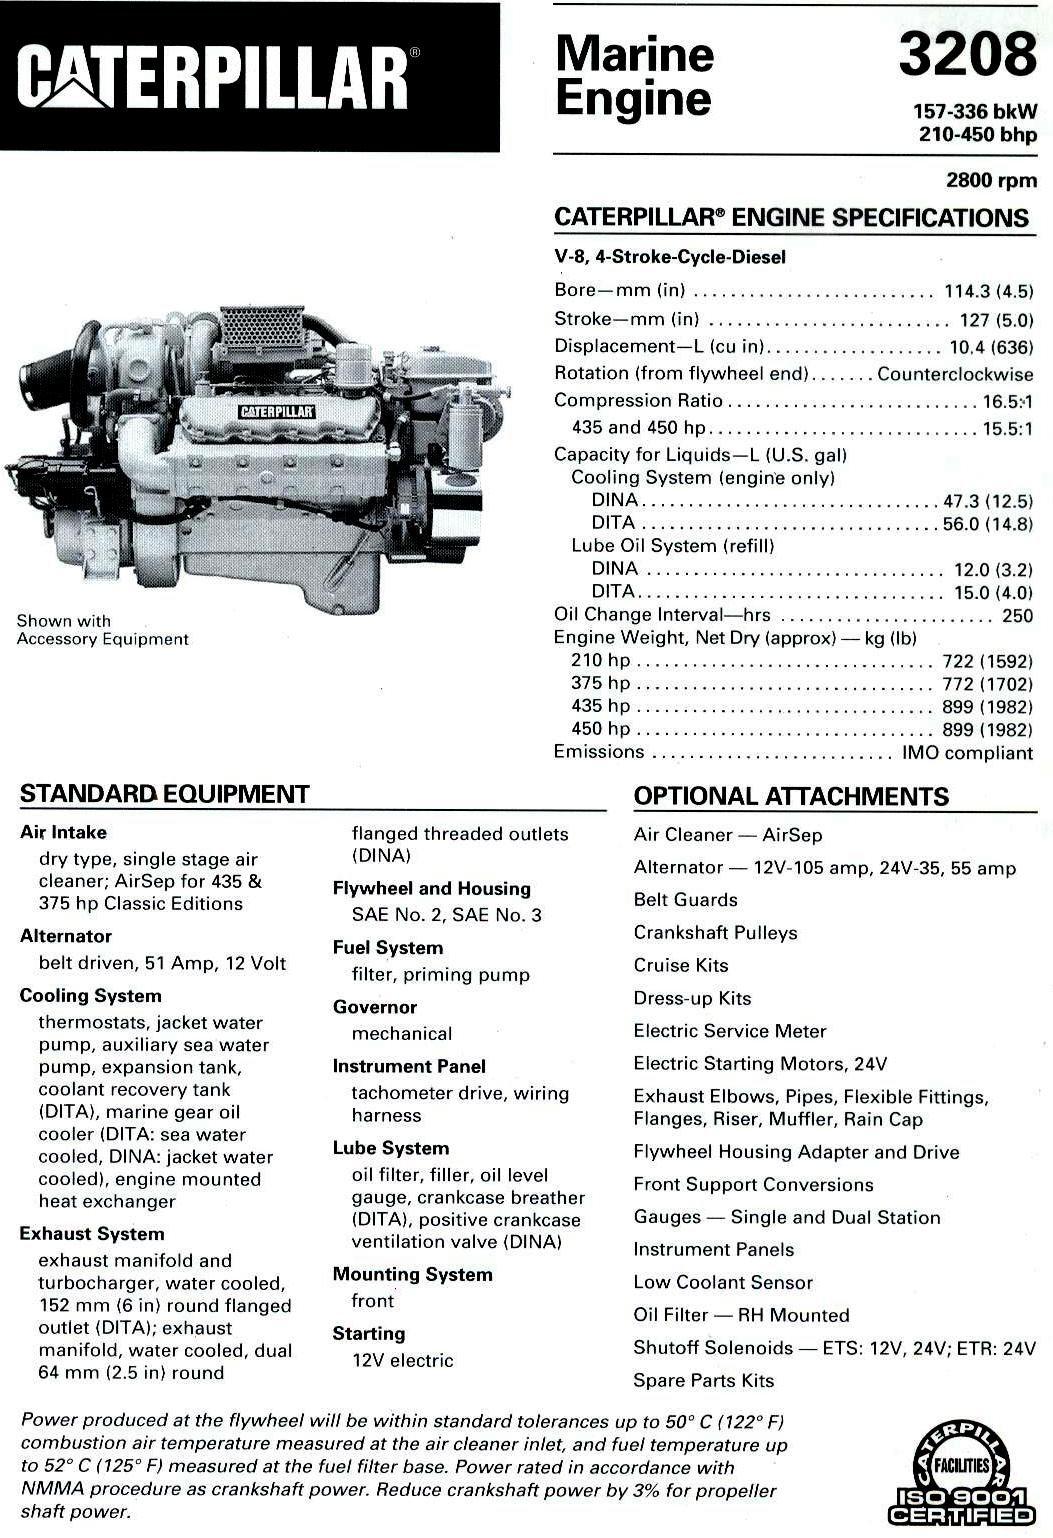 Find The Best Diesel Engine Transmission And Generator Brochures Now Series 53 Detroit Wiring Cat 3208 210 450 Hp Brochure Specification 1